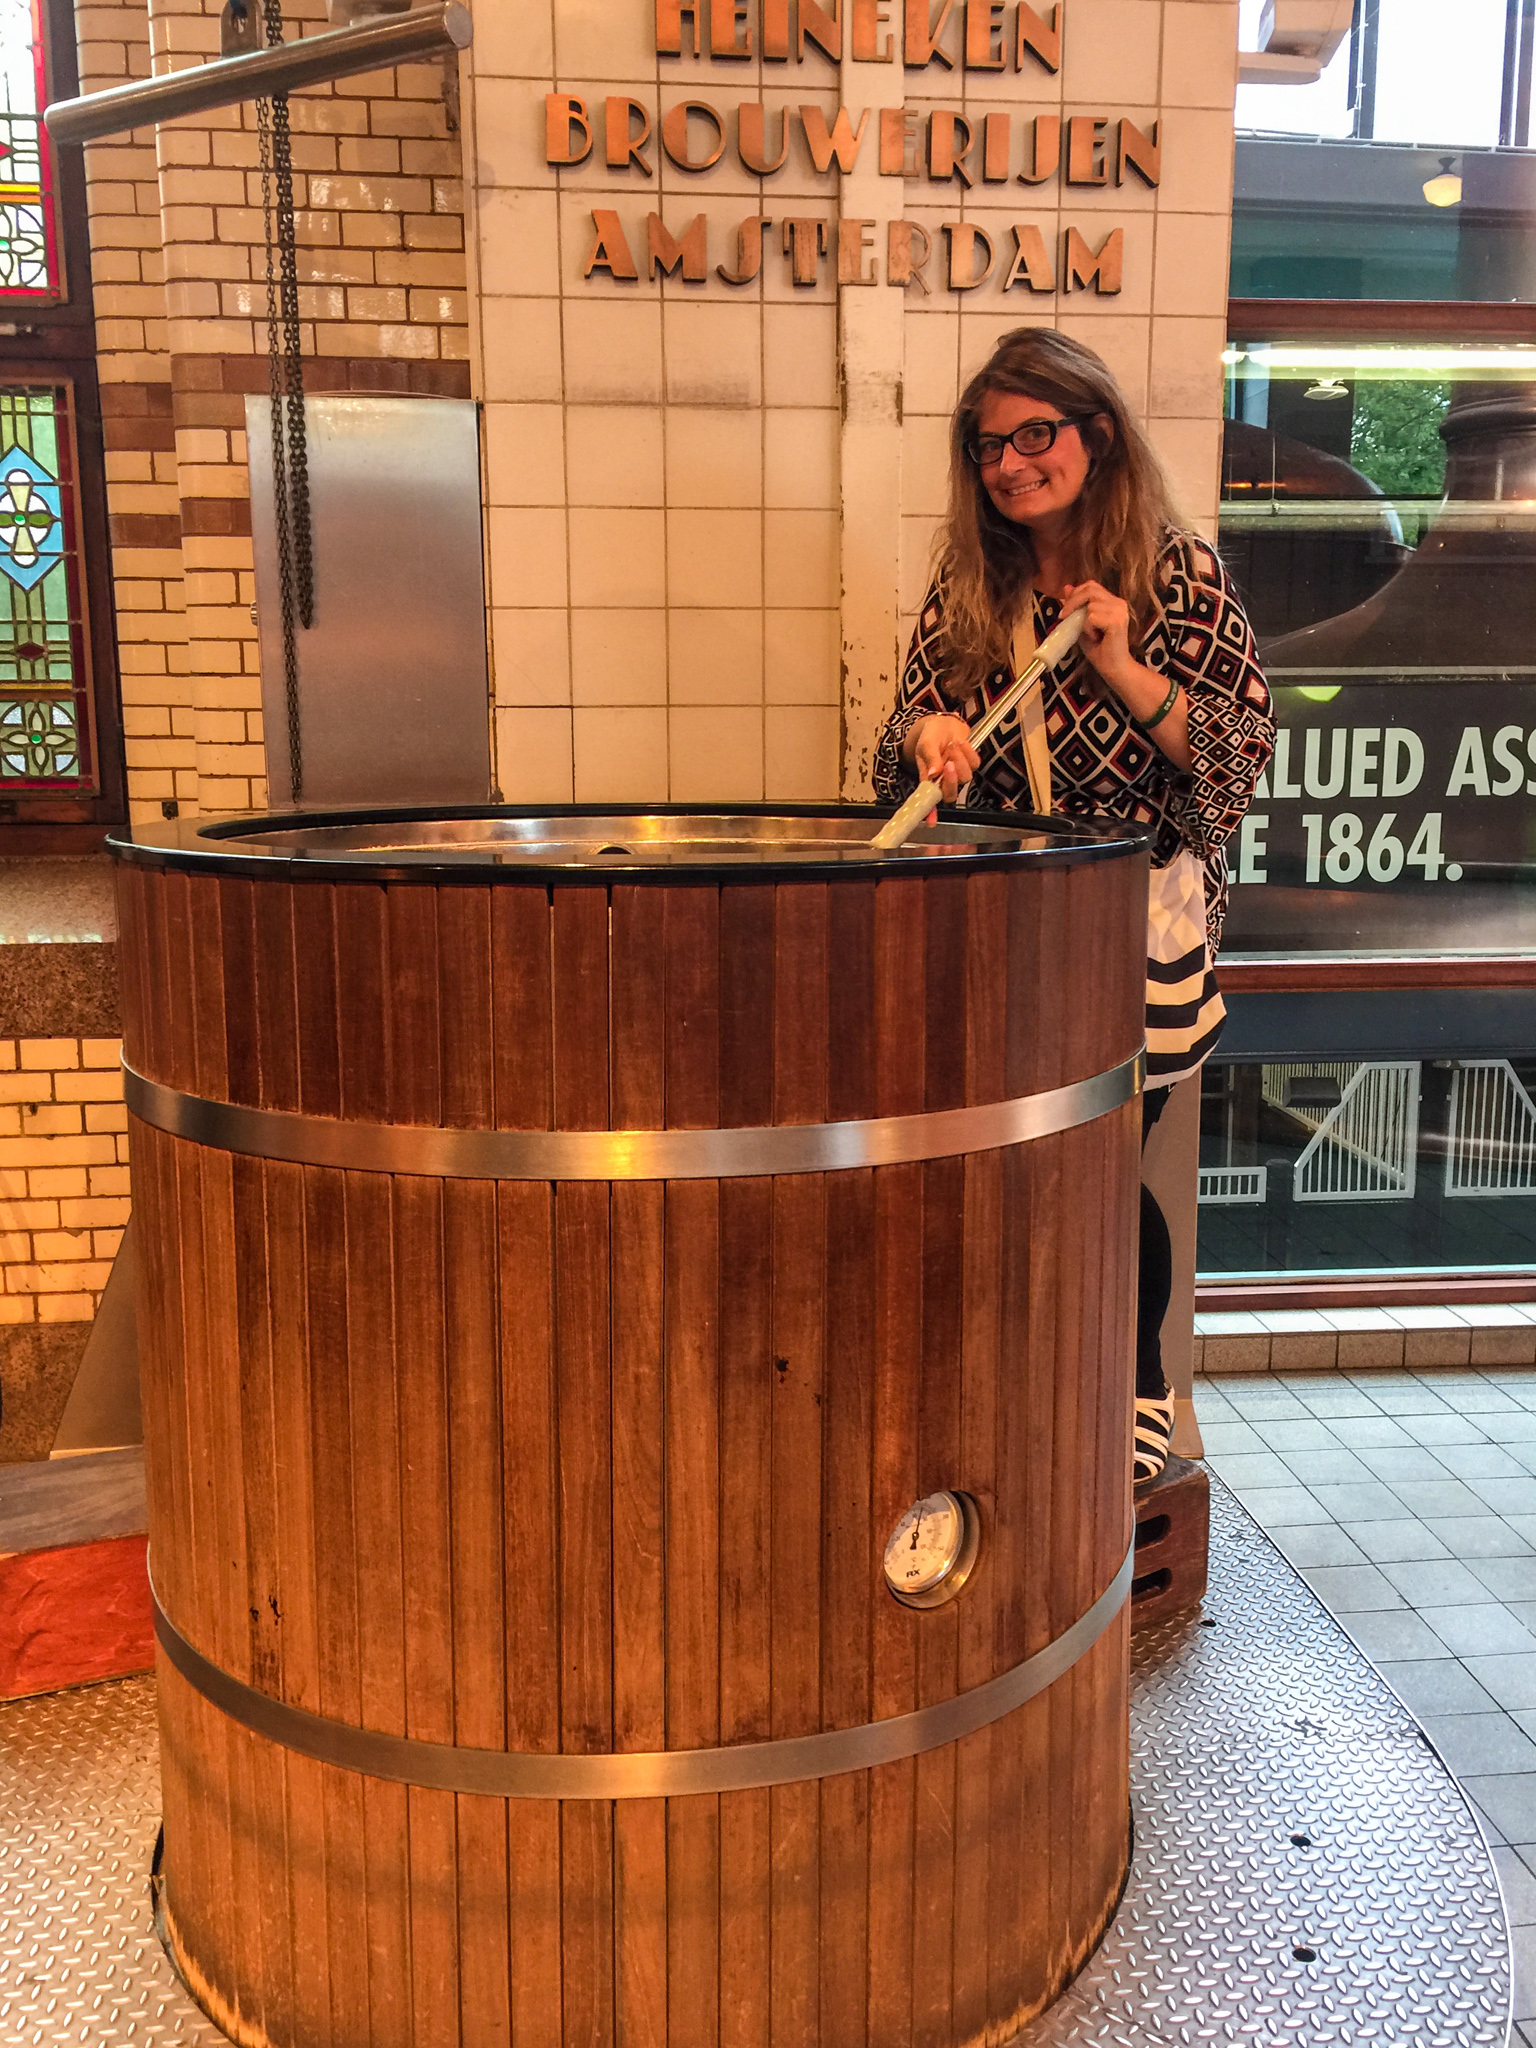 solo trip amsterdam: enjoy the brewery tours